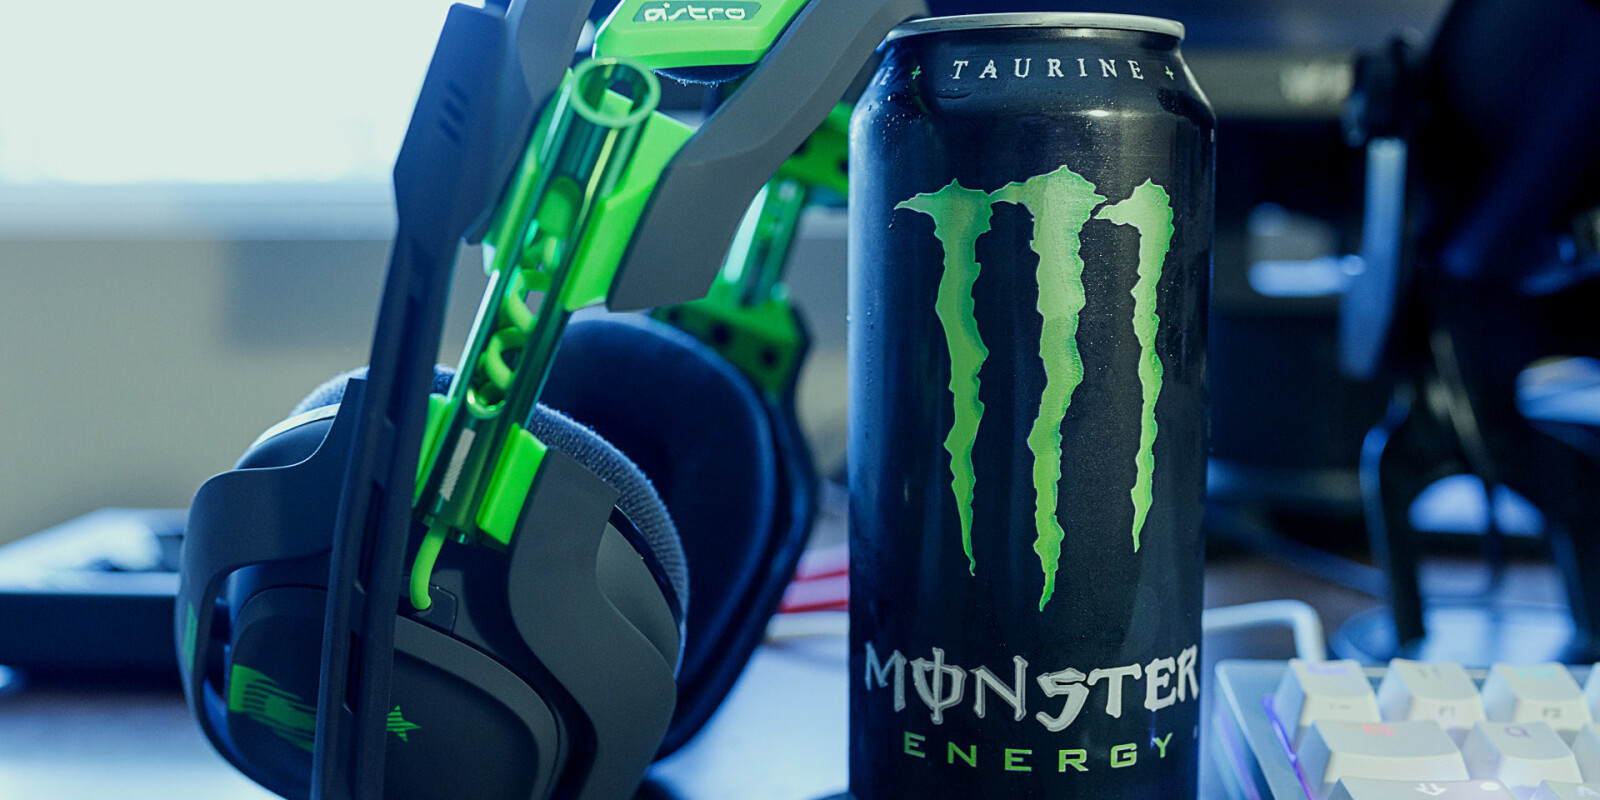 Photos of a Monster can with Astro headphones